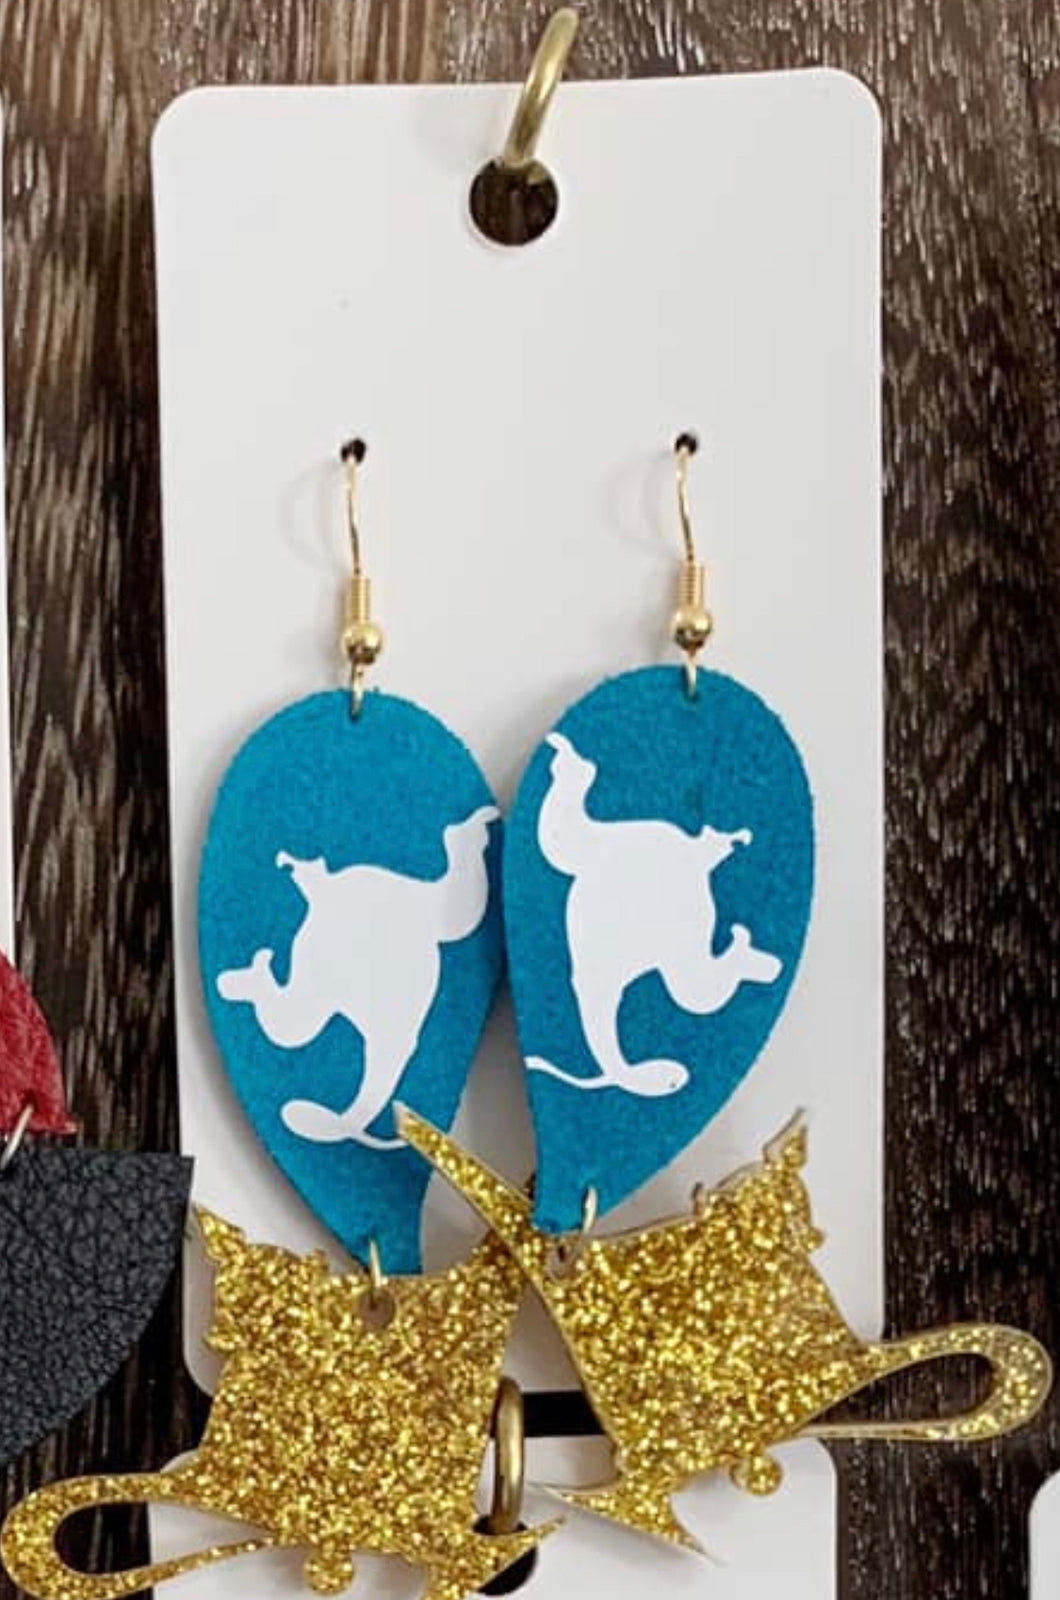 Genie Lamp Leather and Acrylic Earrings